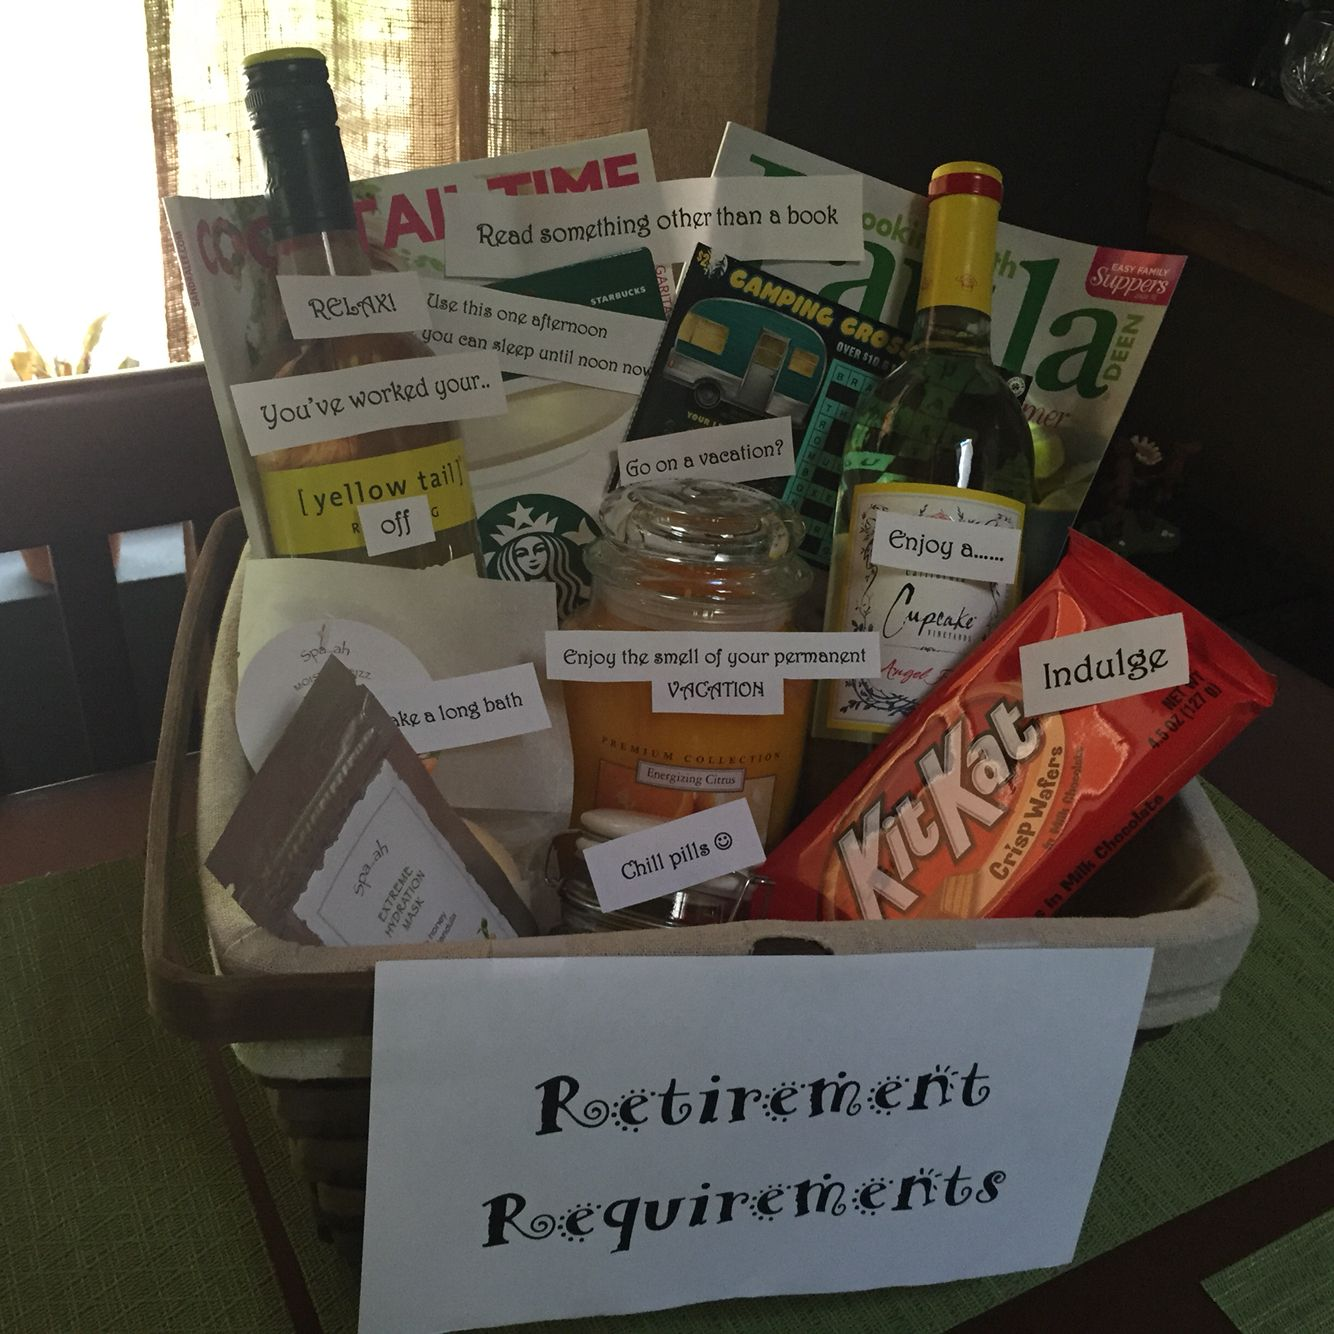 Retirement requirements gift basket | Gift ideas ...